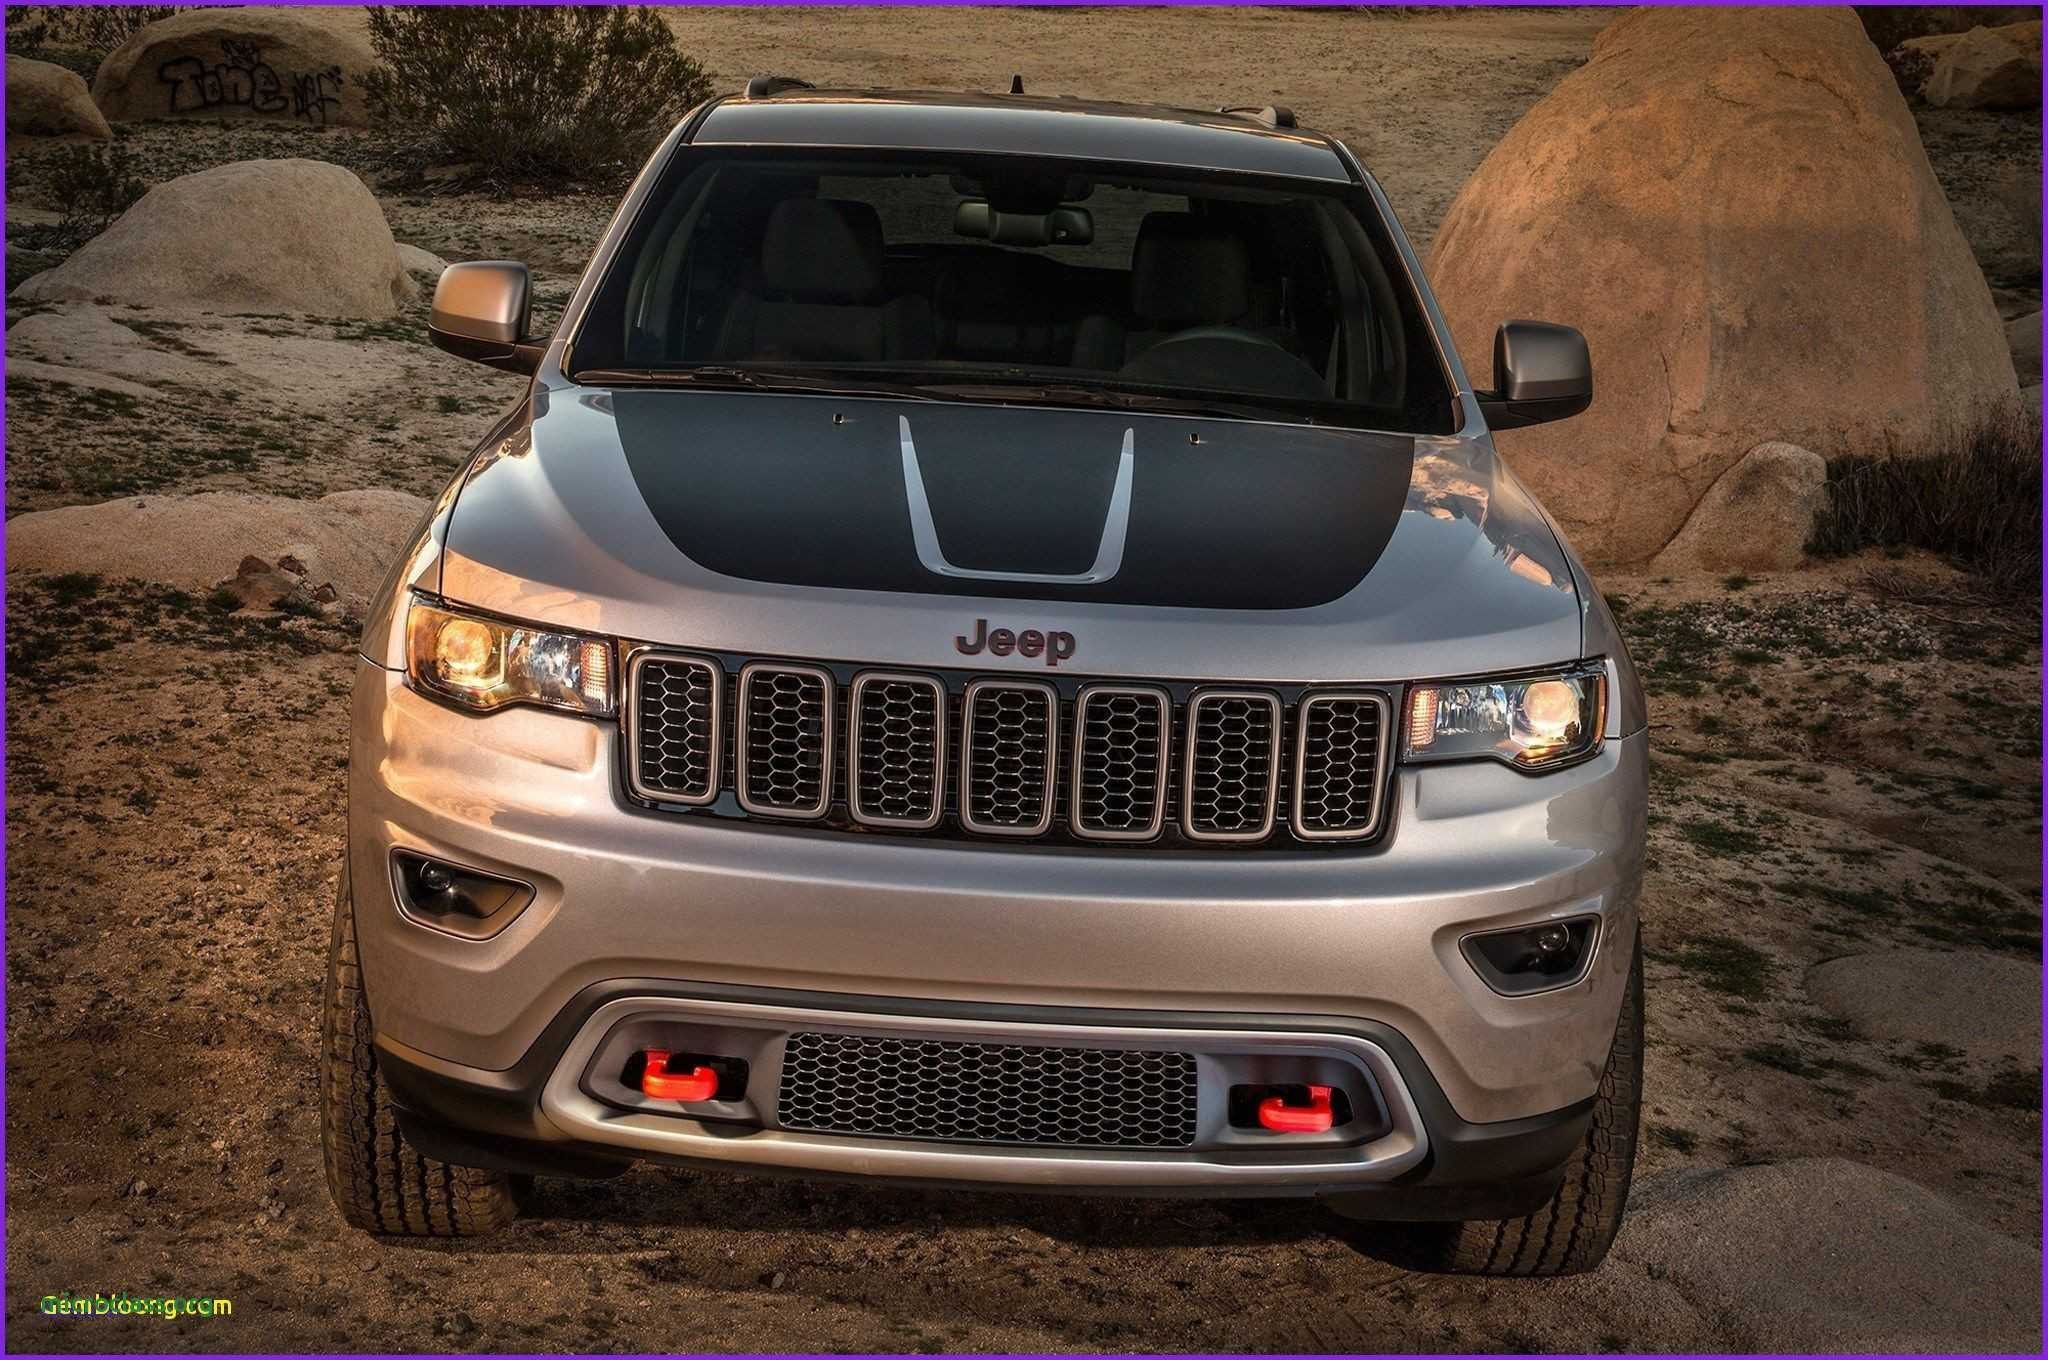 Compass 2019 Compass 2019 Fotos Fotos Do Compass 2019 Novo Jeep